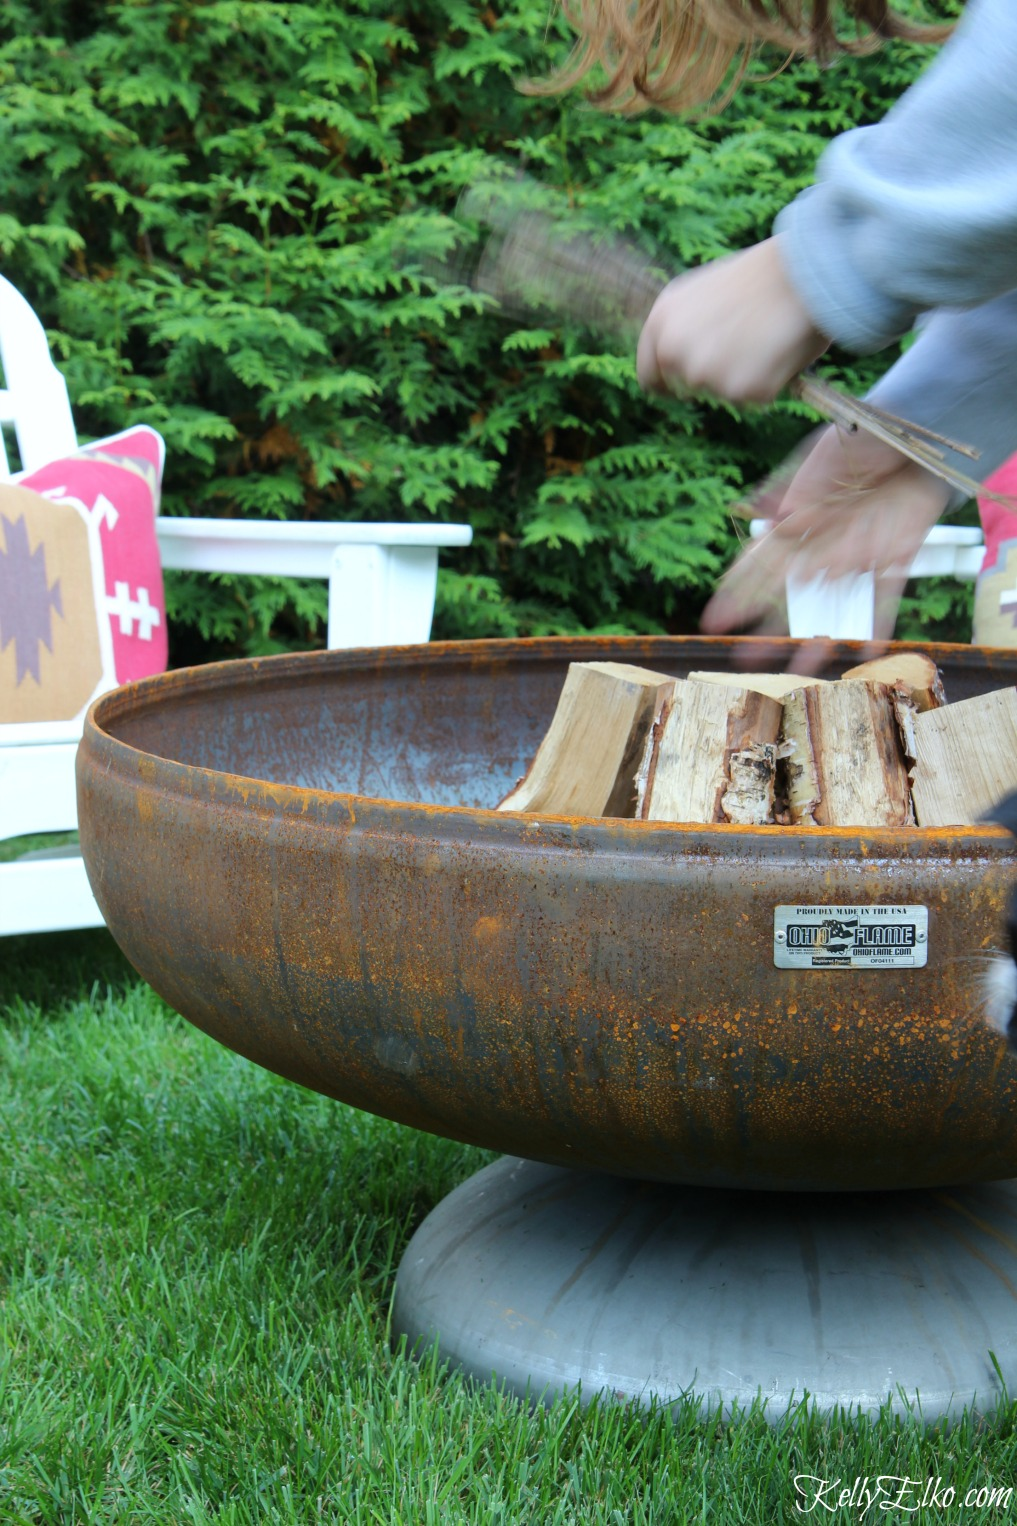 Ohio Flame Fire Pit - I love how it ages into a beautiful patina and won't rot kellyelko.com